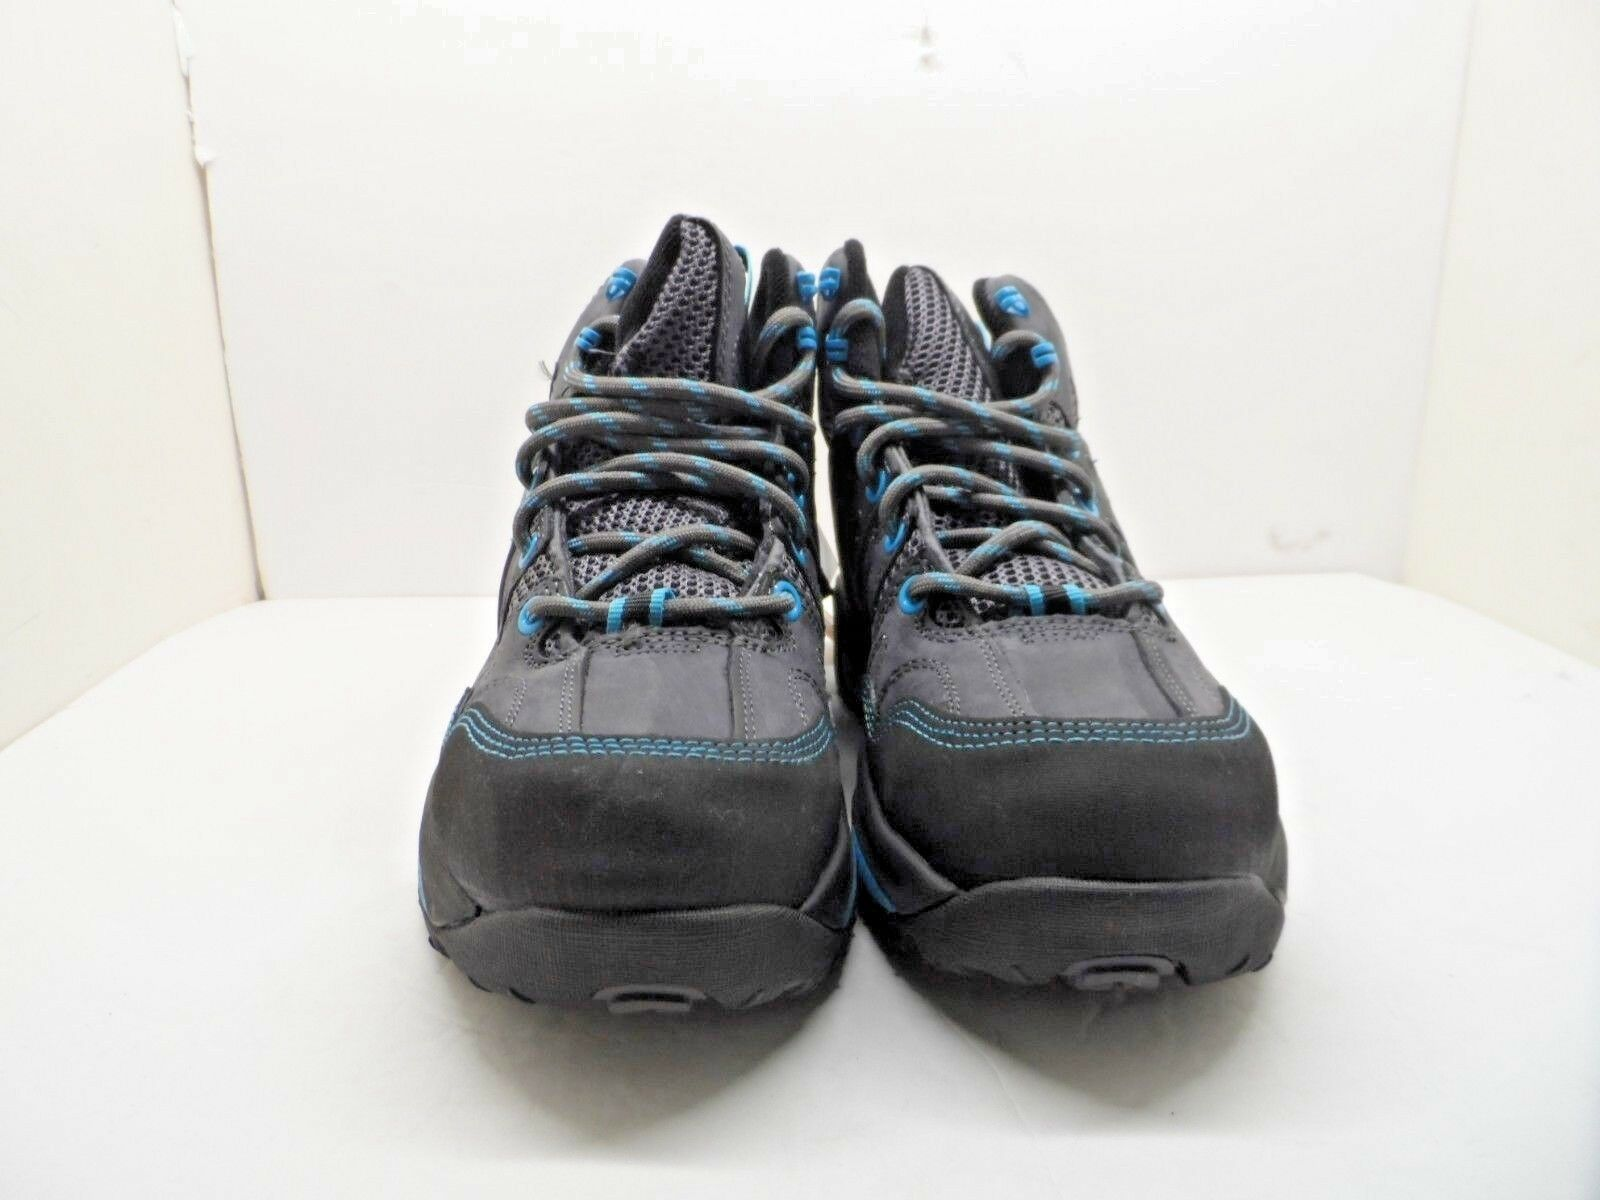 Oliver by Honeywell Women's Mid Mid Mid Industrial Hiker Work shoes OL21112 Size 6.5M fb88a6